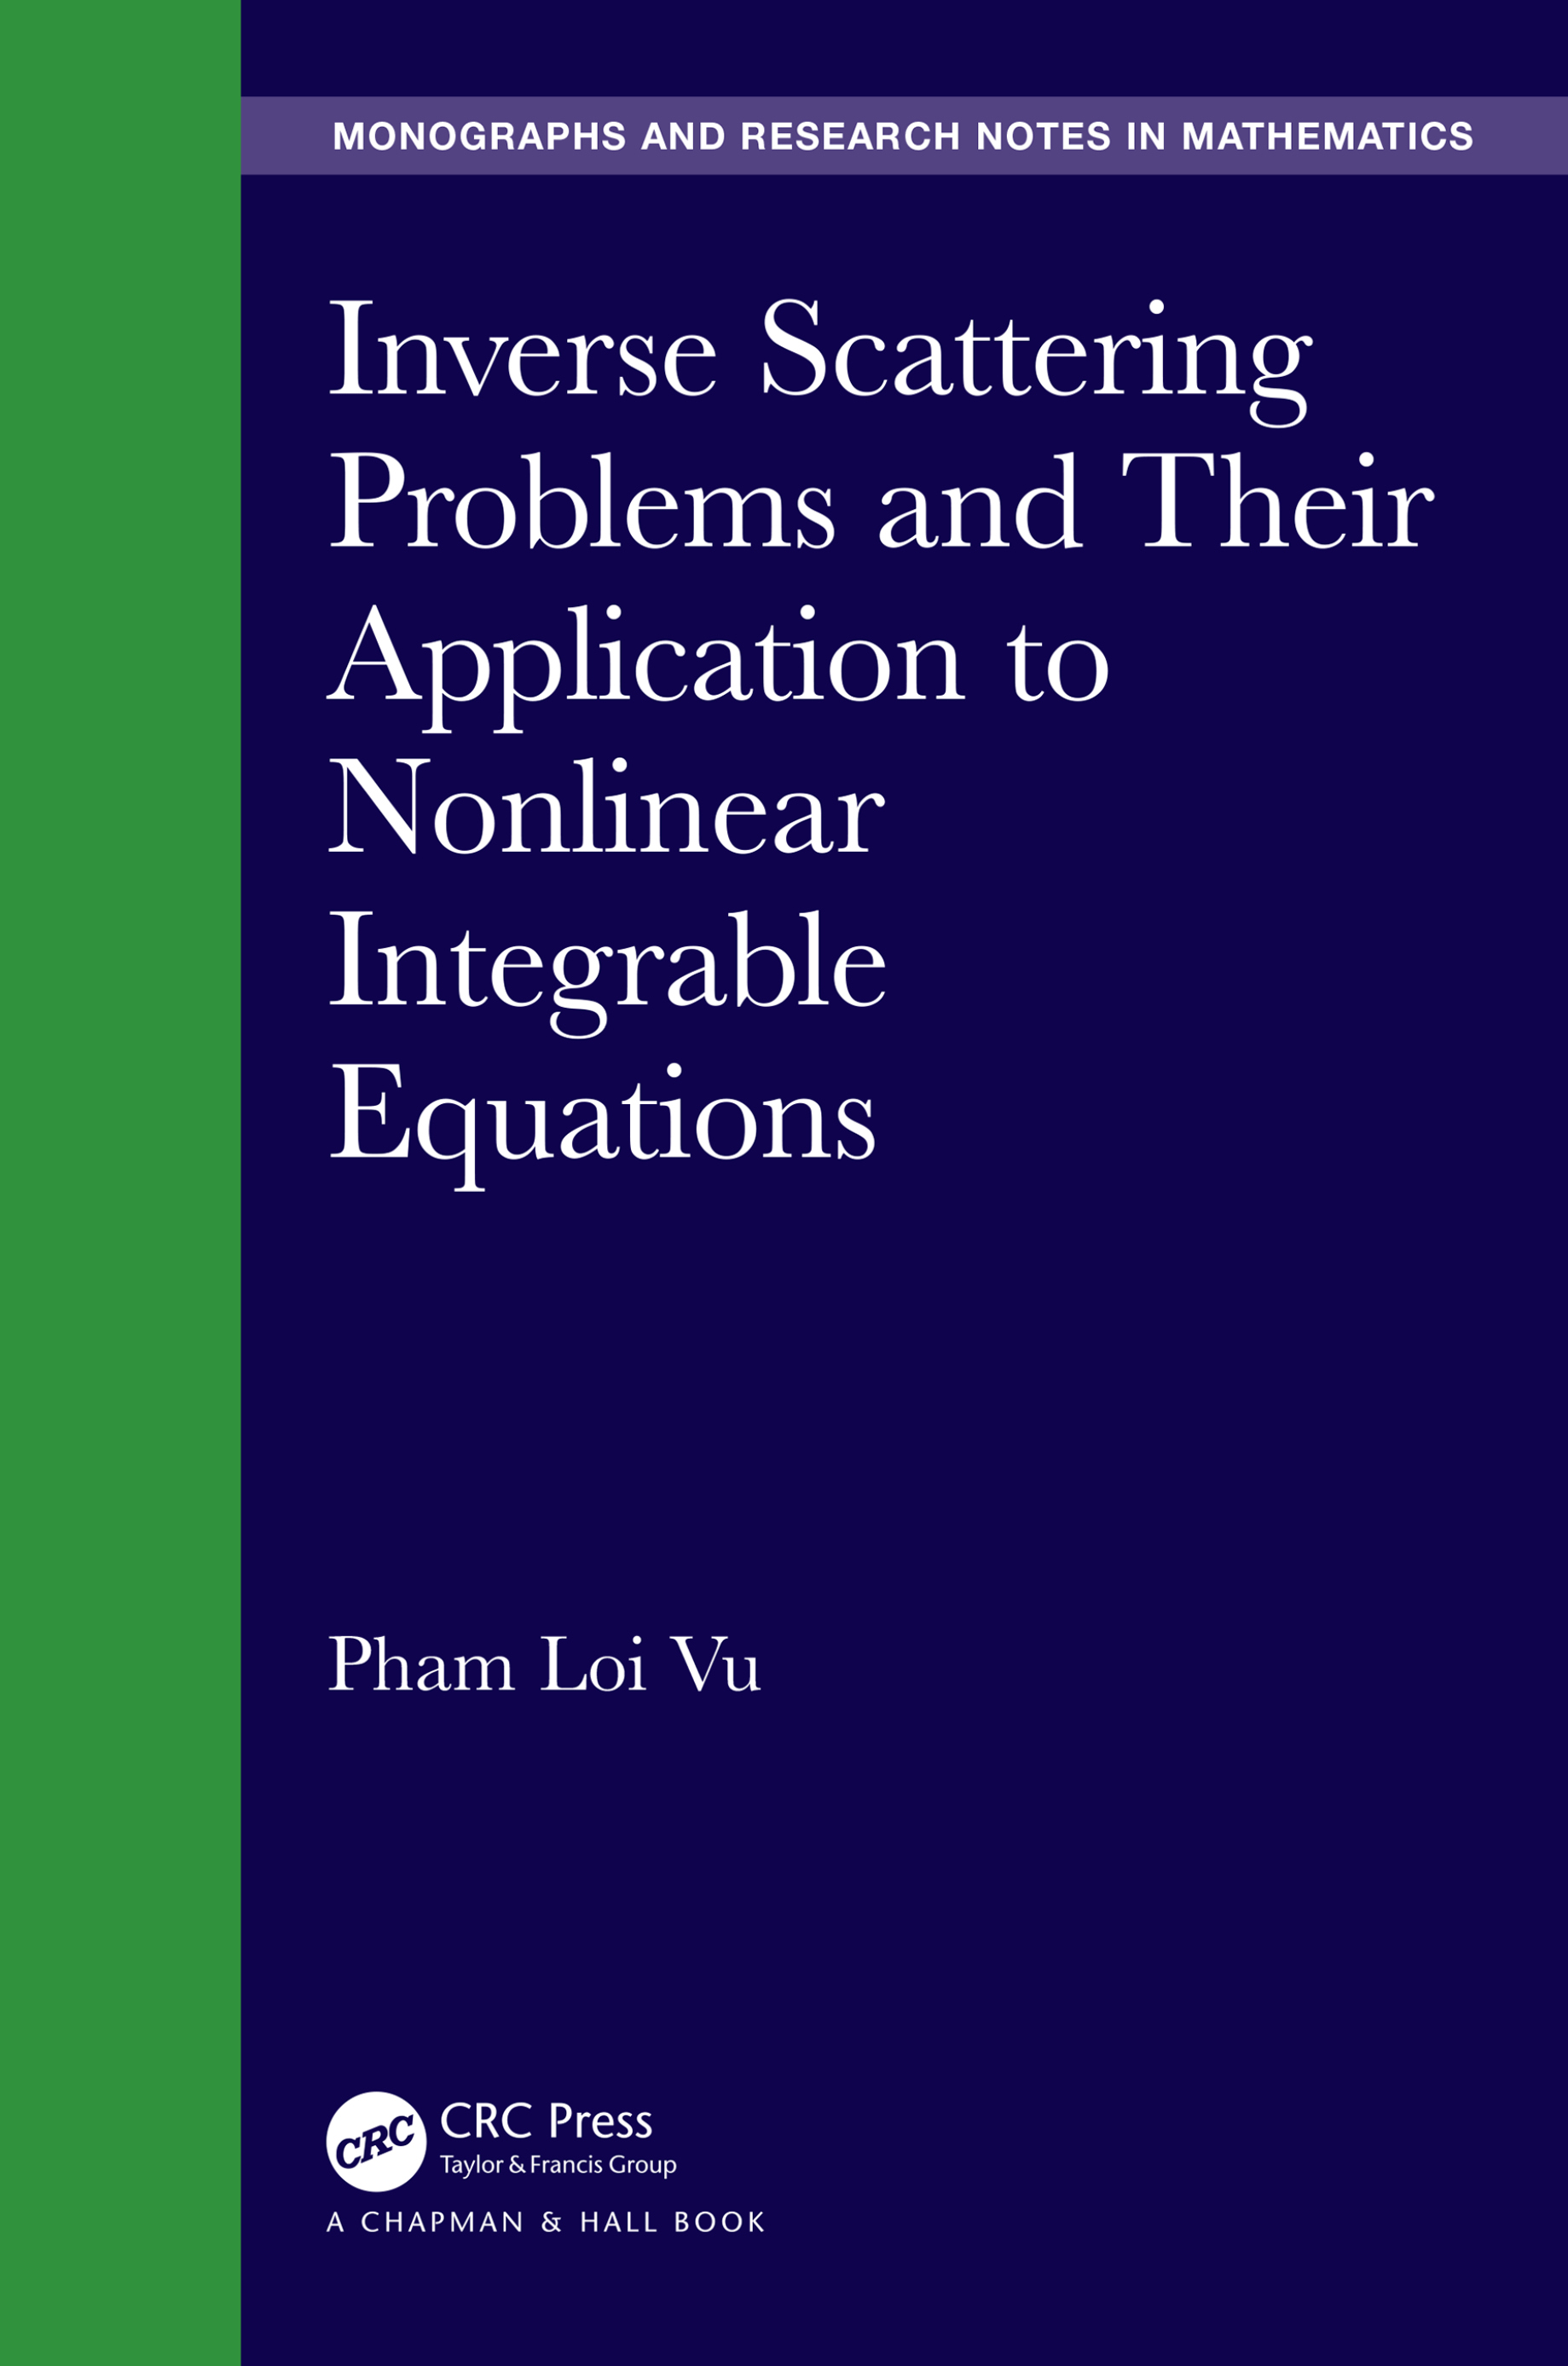 Inverse Scattering Problems and Their Application to Nonlinear Integrable Equations: 1st Edition (Hardback) book cover